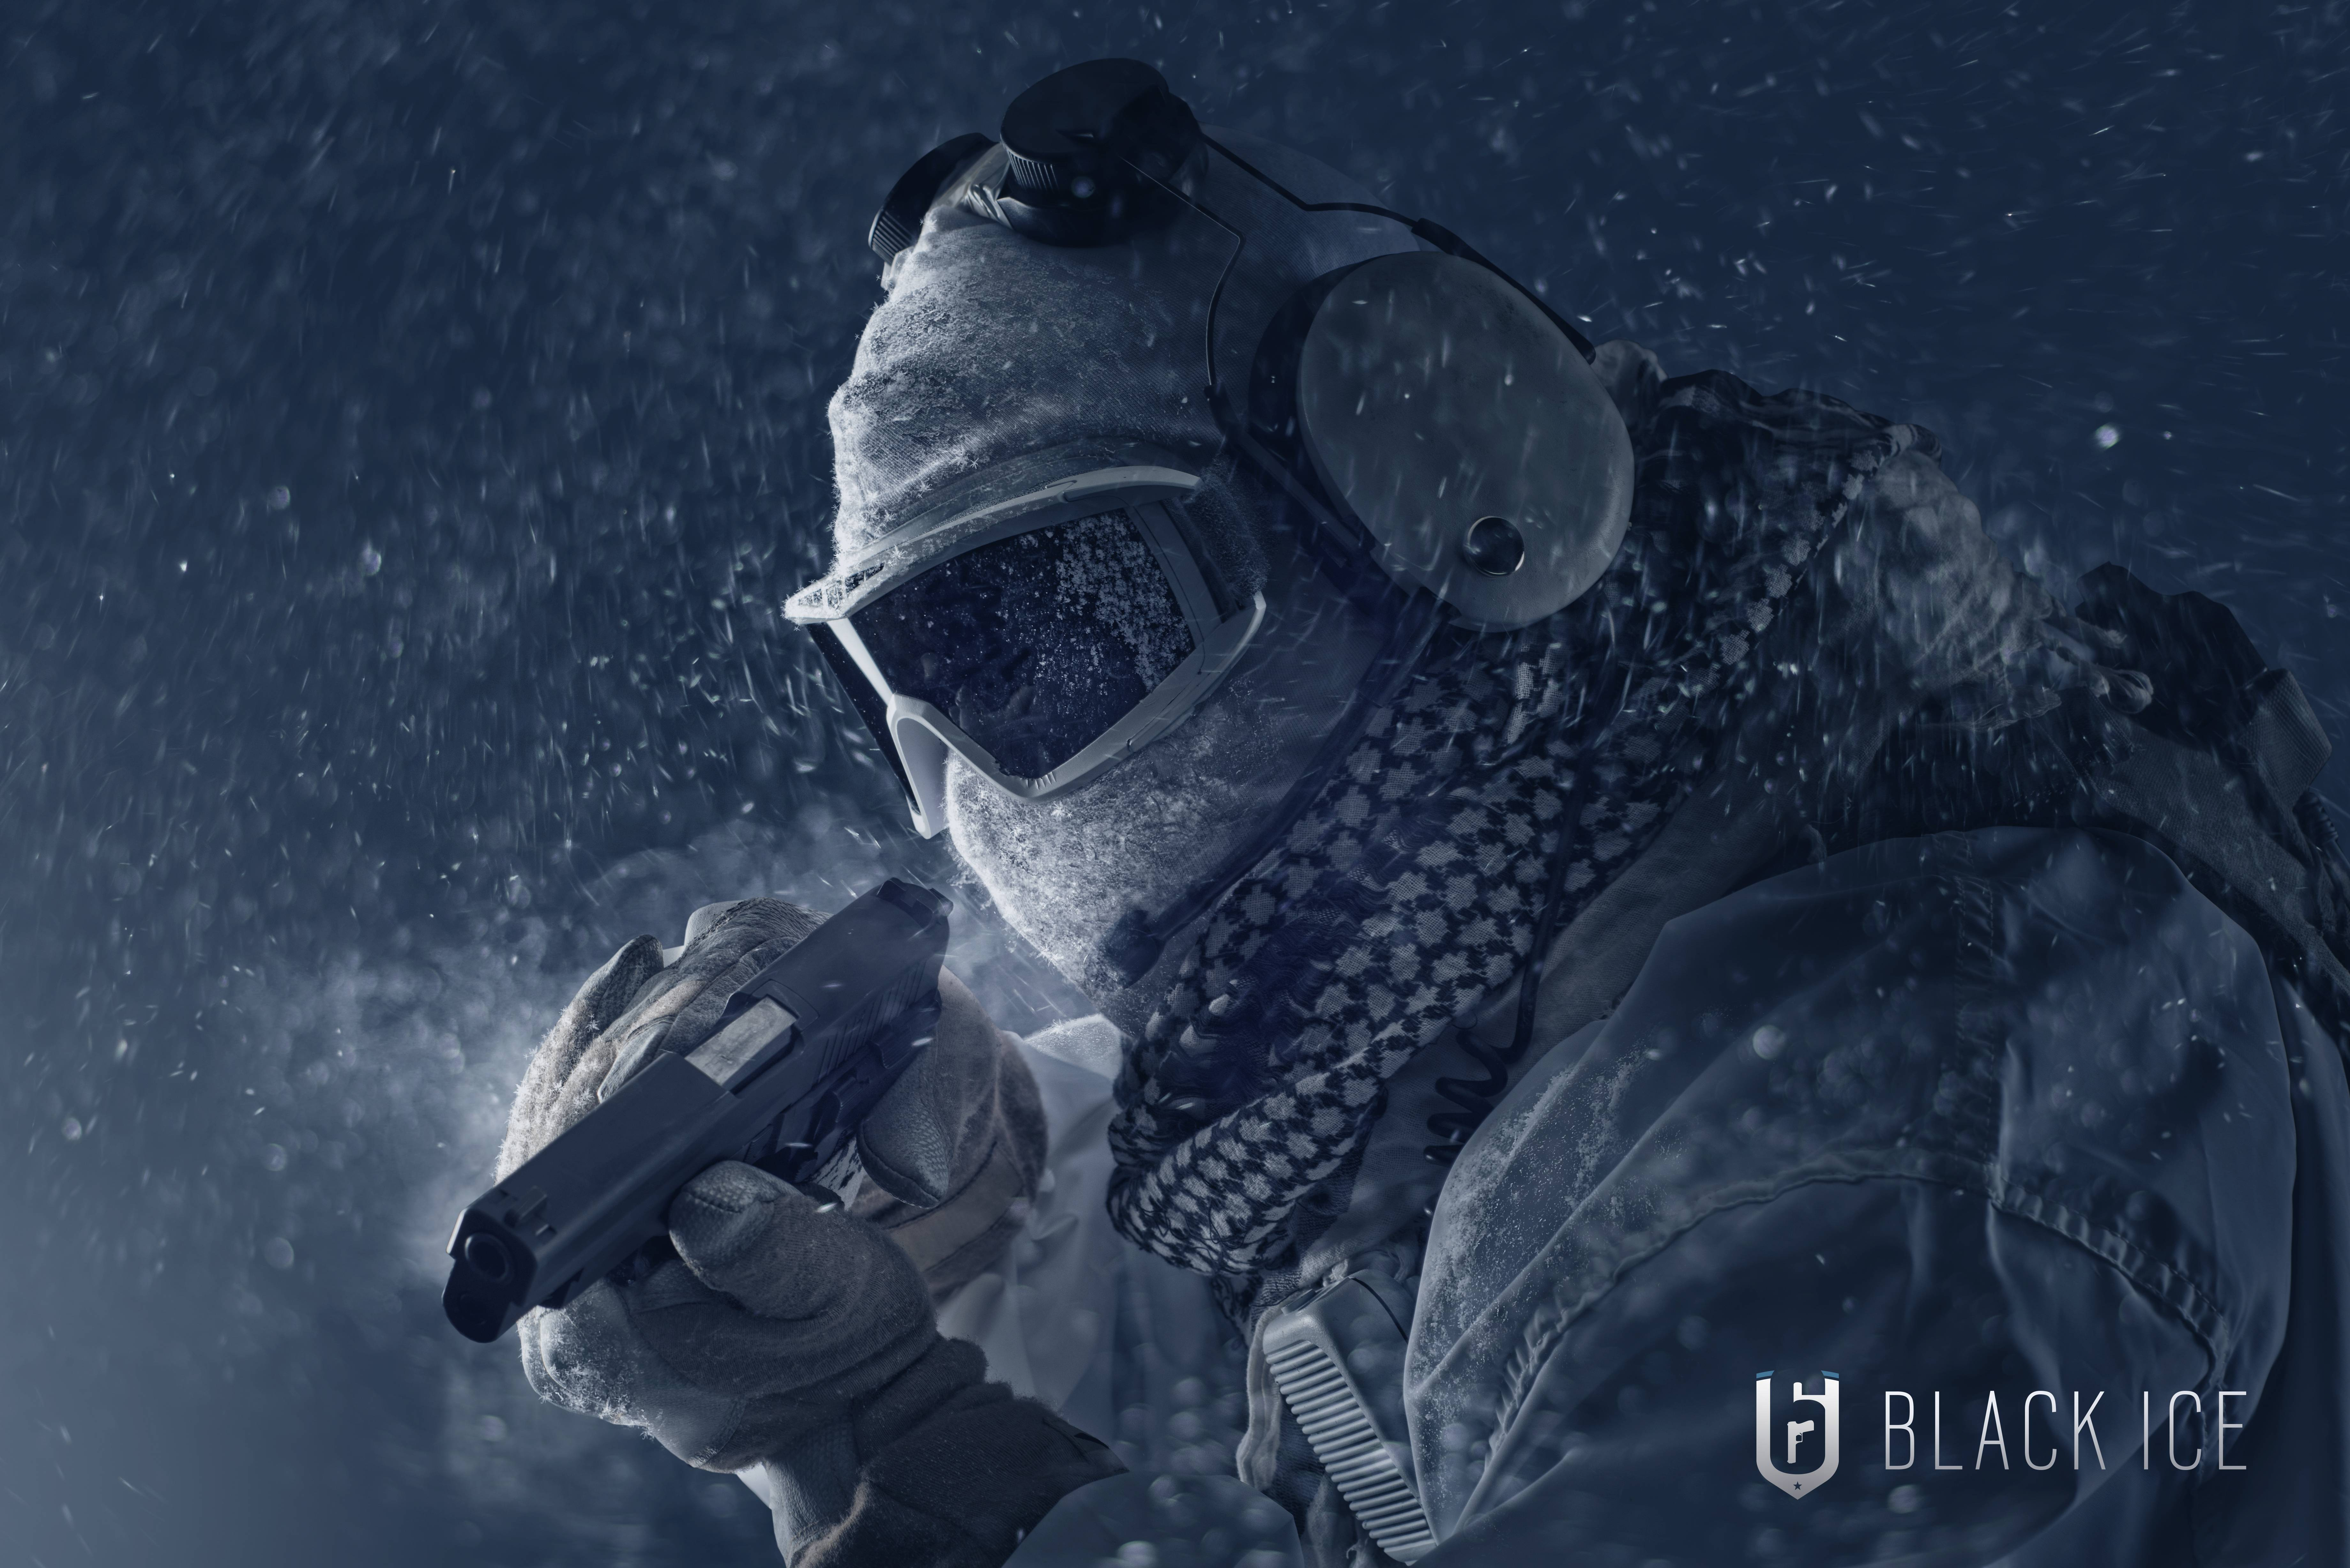 Rainbow Six Siege Wallpaper Black Ice 471527 Hd Wallpaper Backgrounds Download